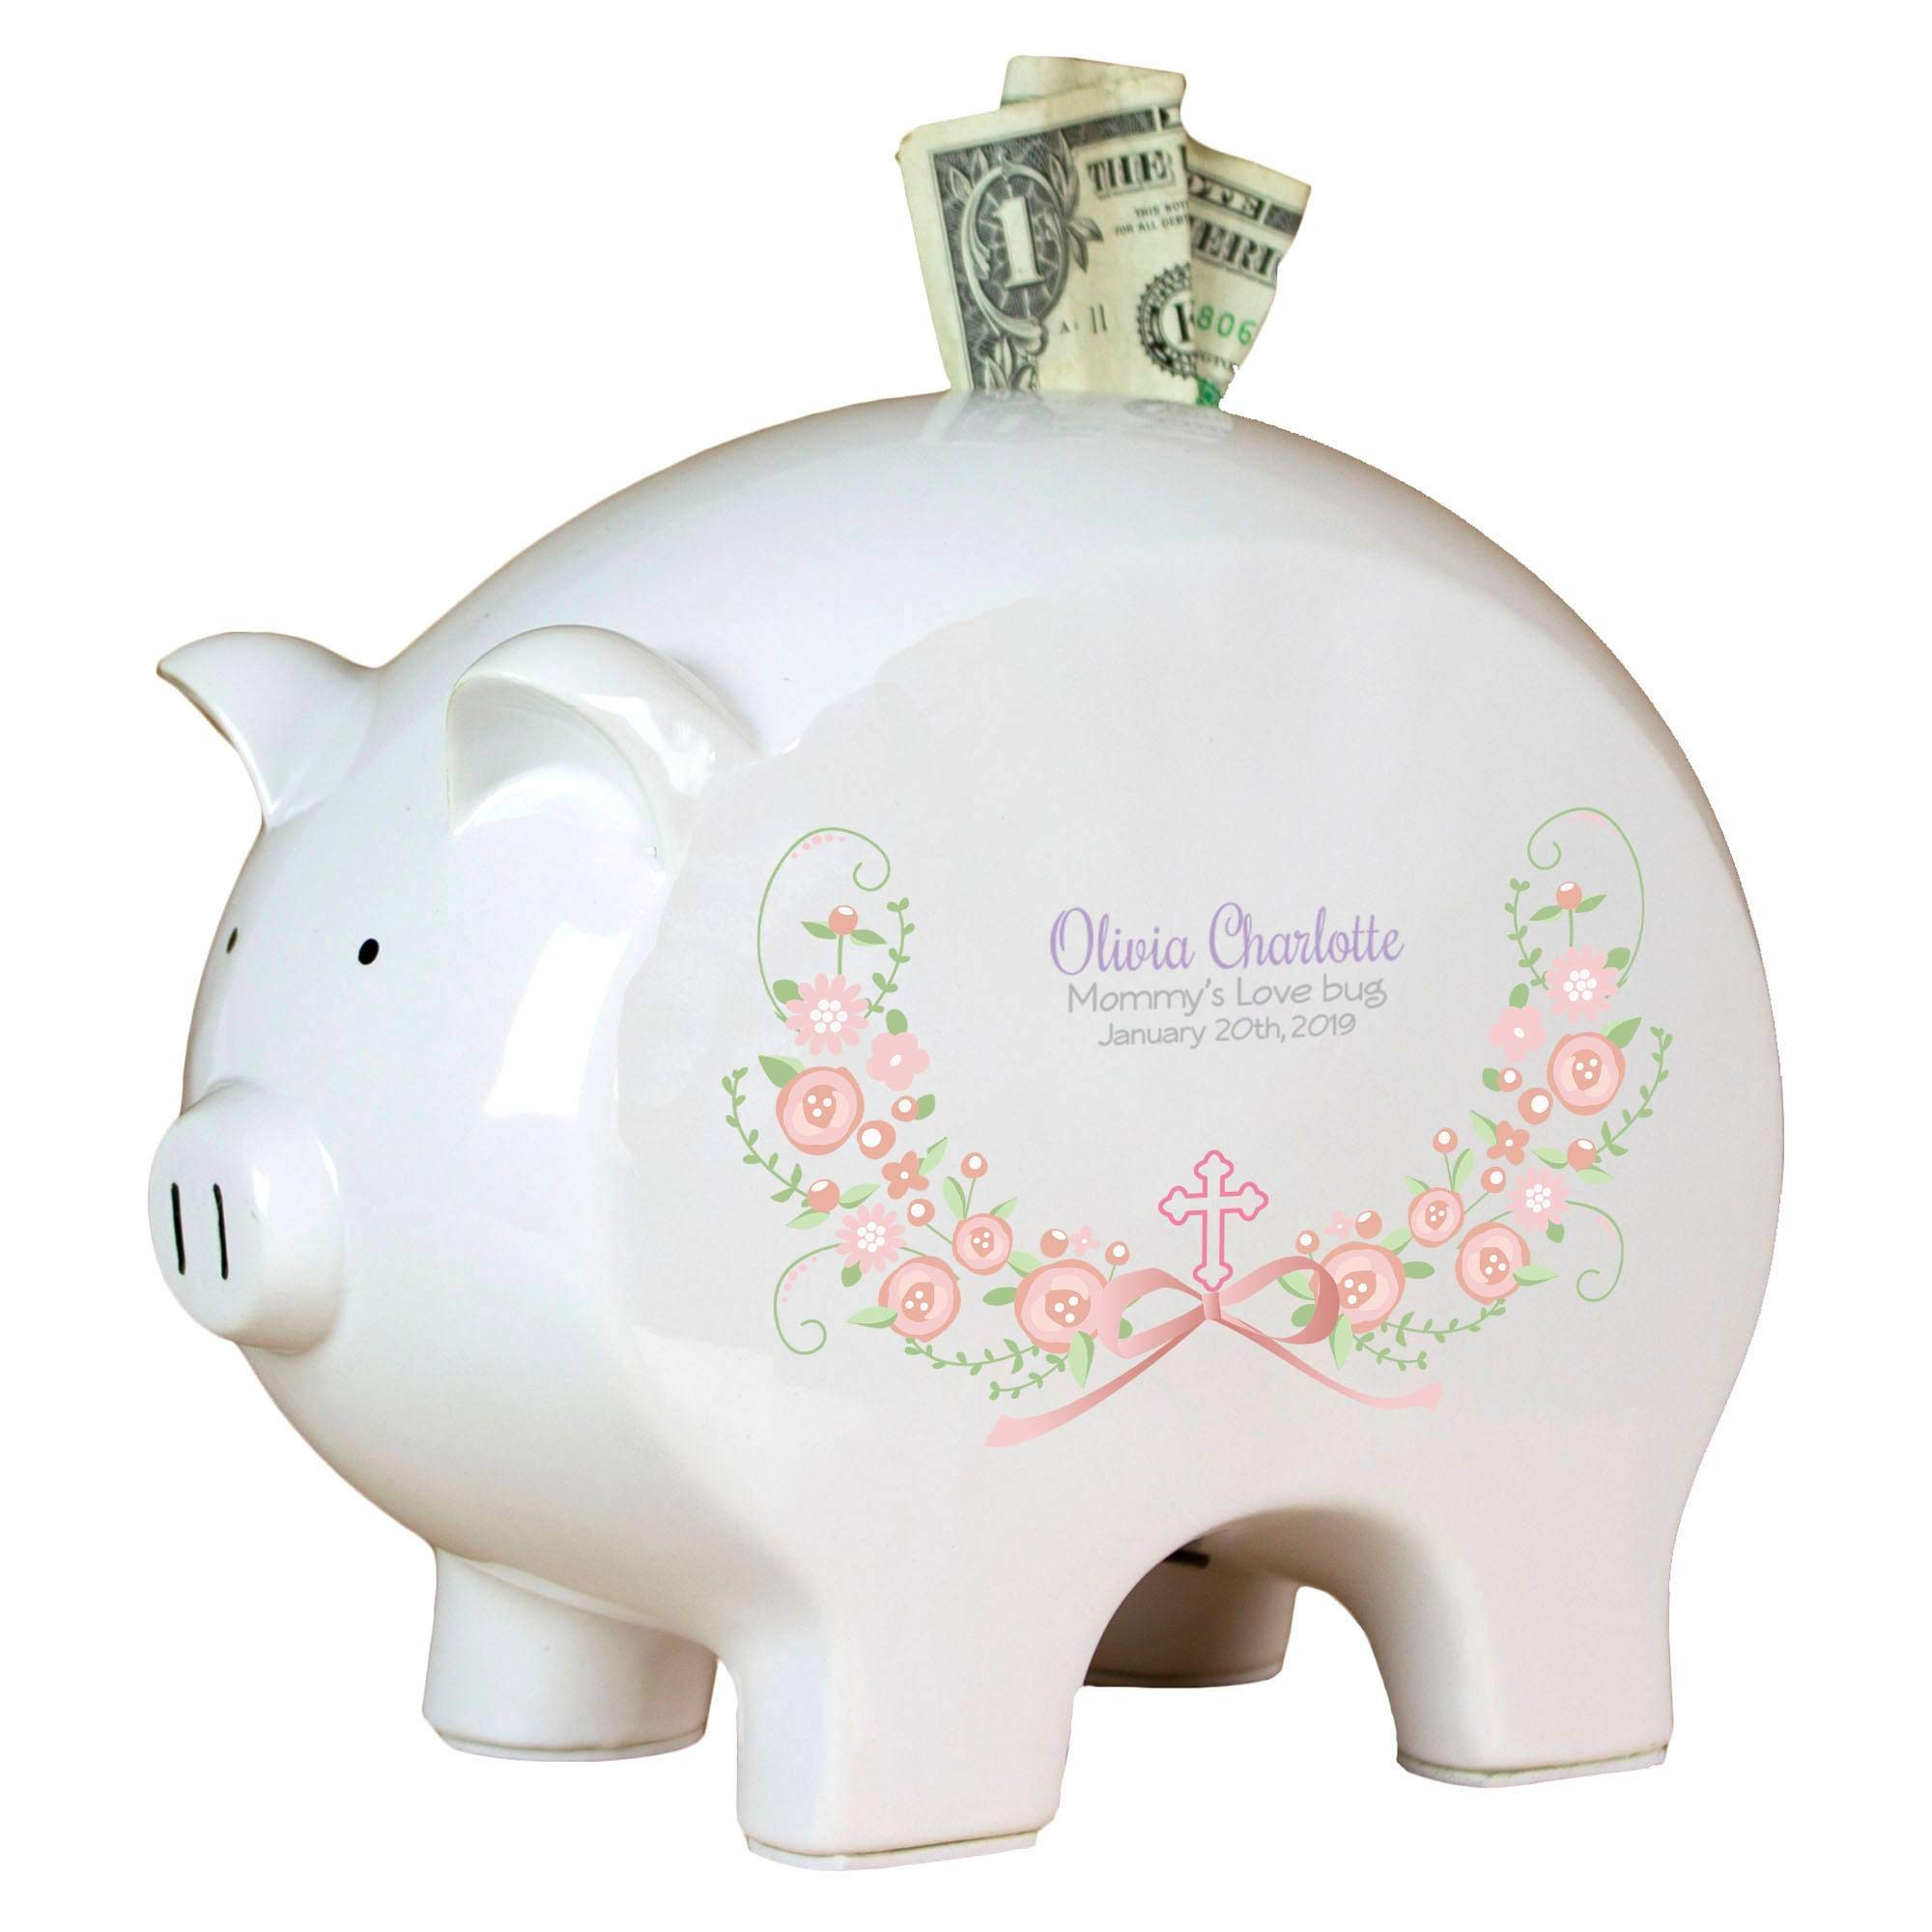 Personalized Baptism and First Communion Blush Floral Garland Piggy Bank-3L by MyBambino (Image #1)